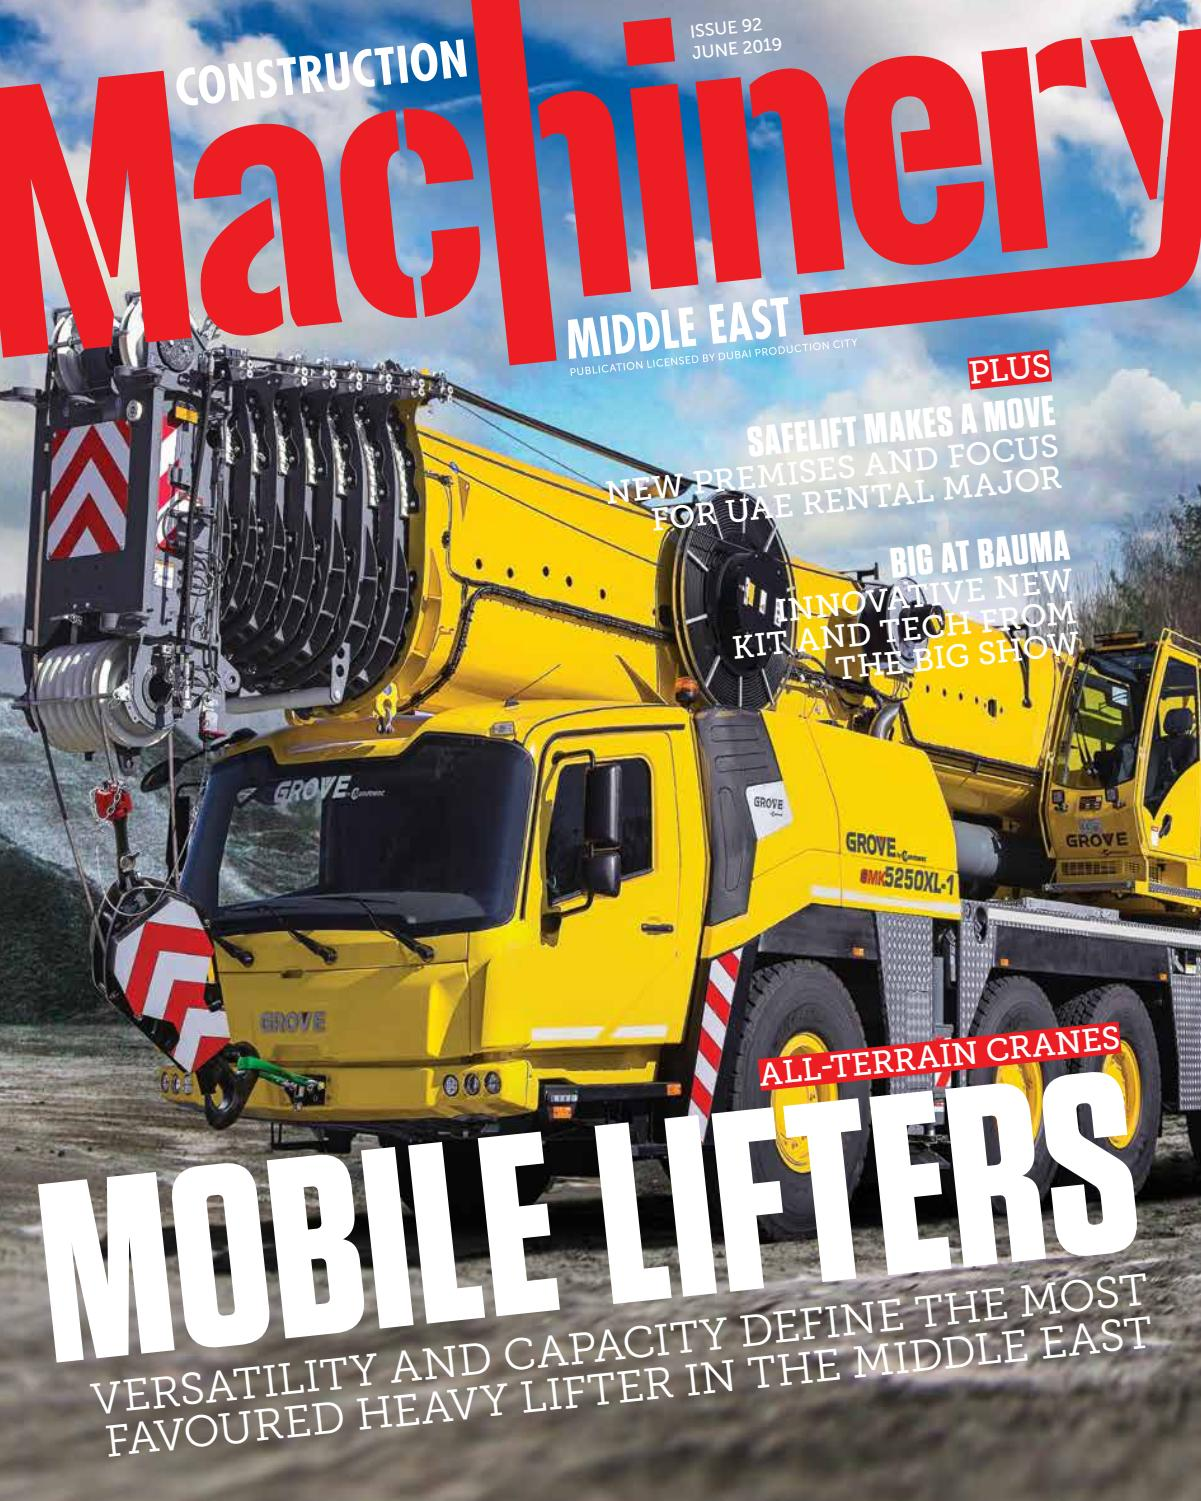 Construction Machinery | Middle East Construction News